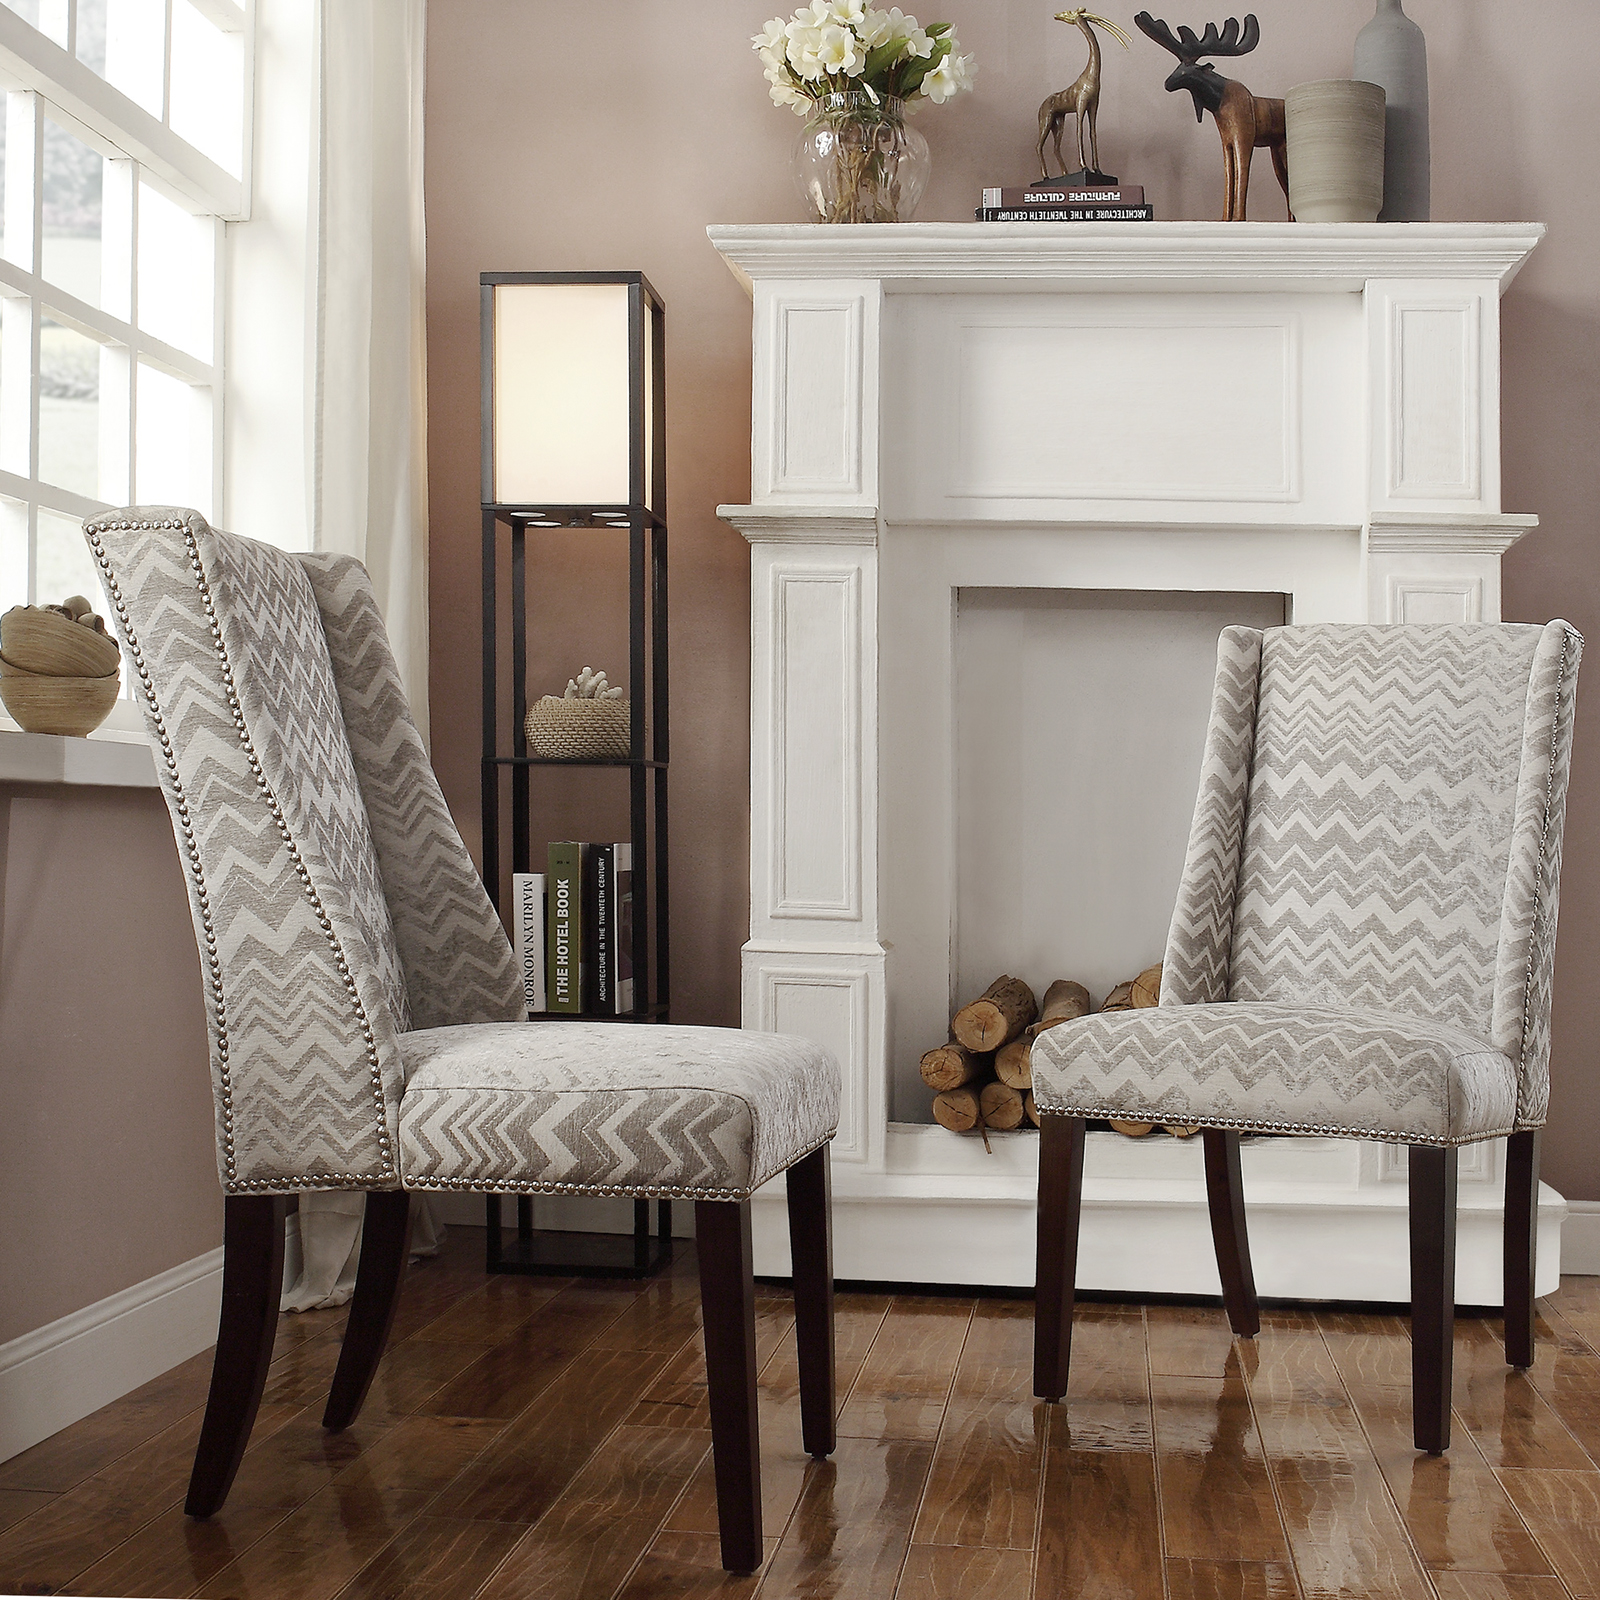 Chelsea Lane Gray Chevron Print Fabric Wingback with Nailhead Accent Chair  - Set of 2 | Hayneedle